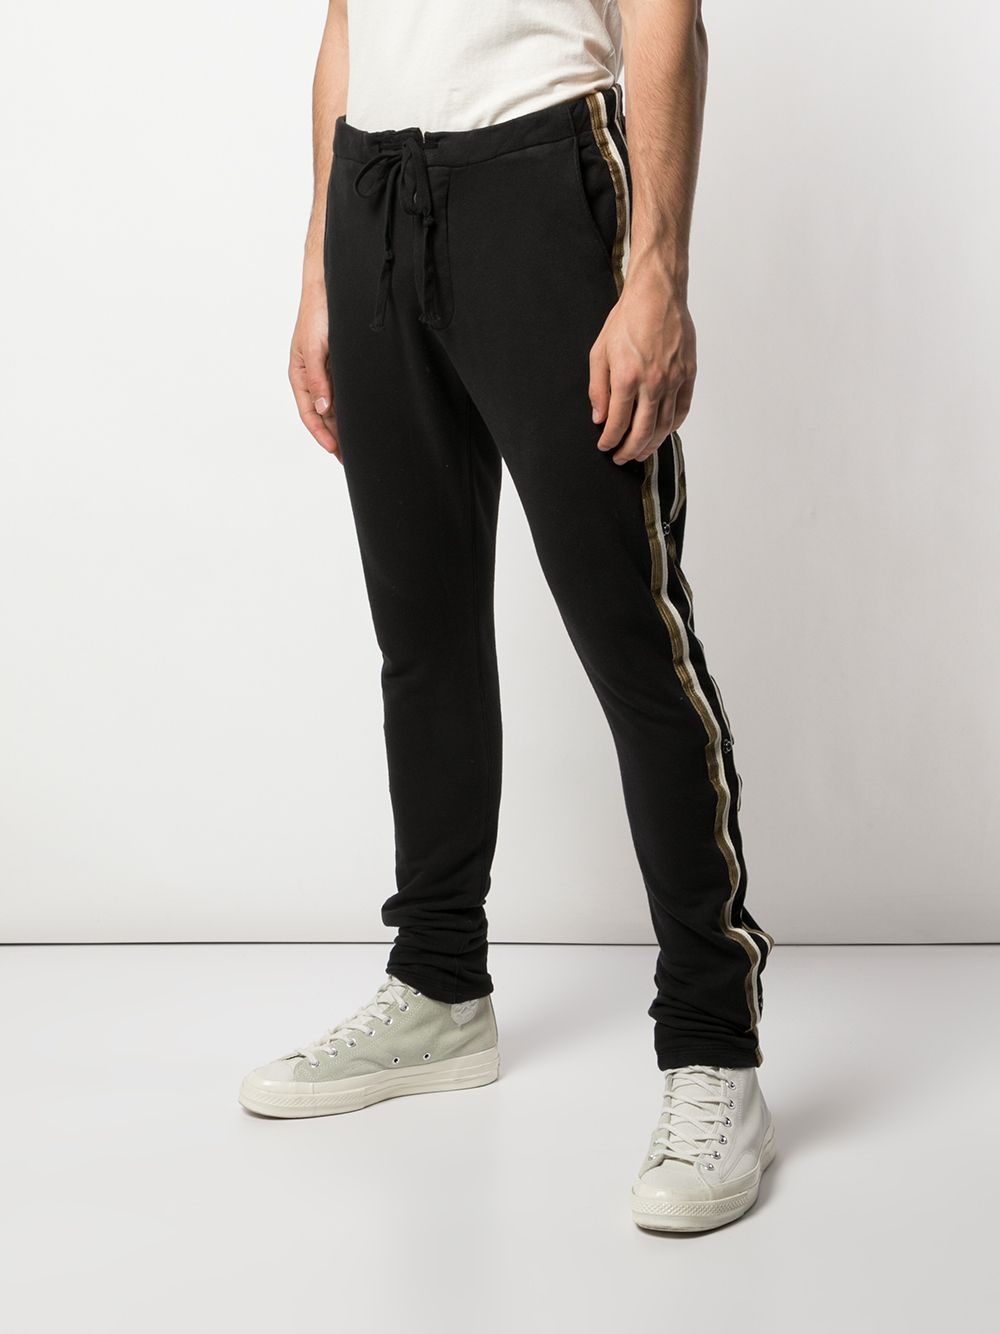 GREG LAUREN MEN BLACK ROYAL LONG PANTS